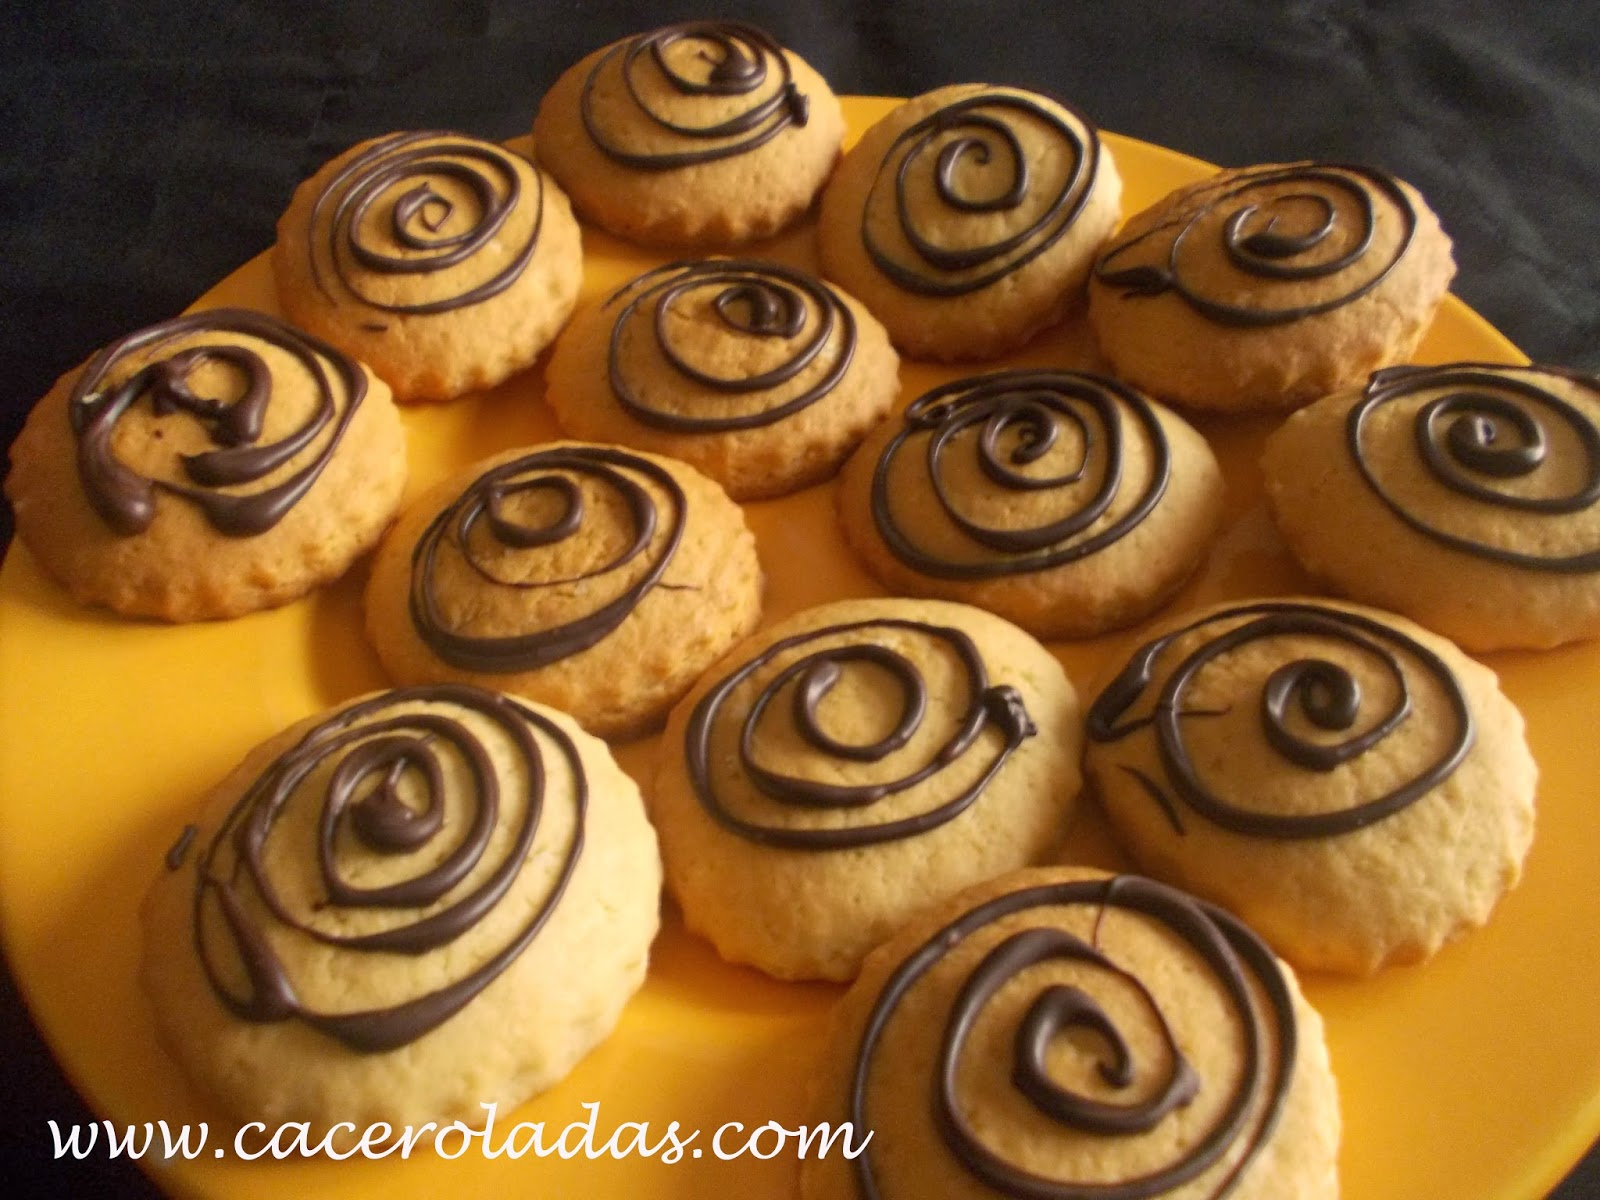 Galletas caseras con chocolate